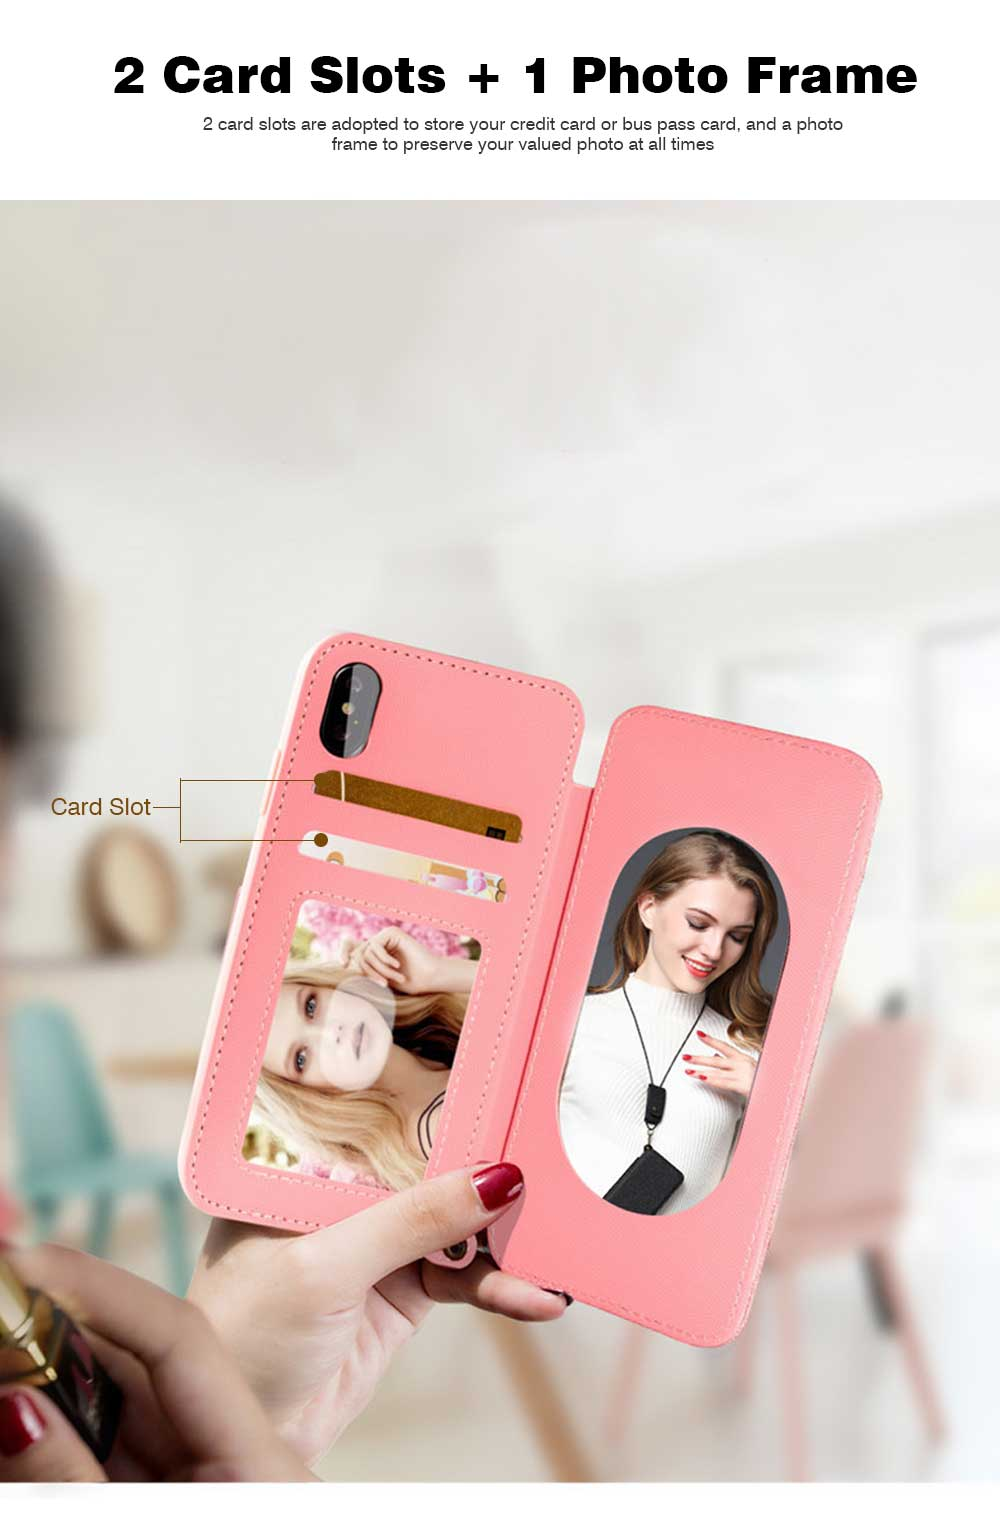 Matte Texture Phone Case with Inside Mirror for iPhone 6,6S,6P,6SP,7,8,7P,8P,X,XS,XS Max,XR Samsung Note 8,S8,S8 Plus, Built-in Mirror Folio Phone Cover 3